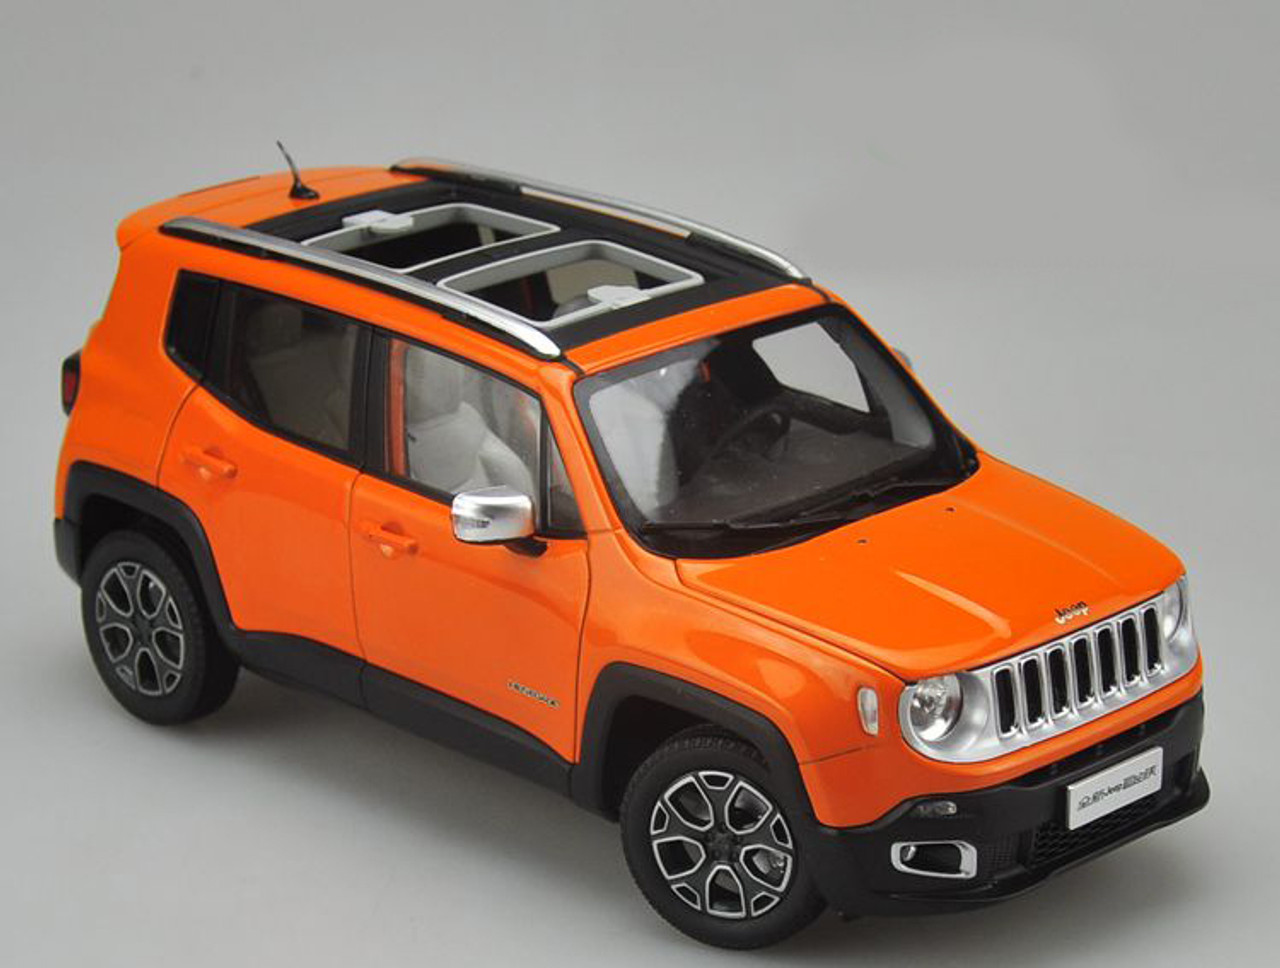 Jeep Renegade Orange >> 1 18 Dealer Edition Jeep Renegade Orange Diecast Car Model